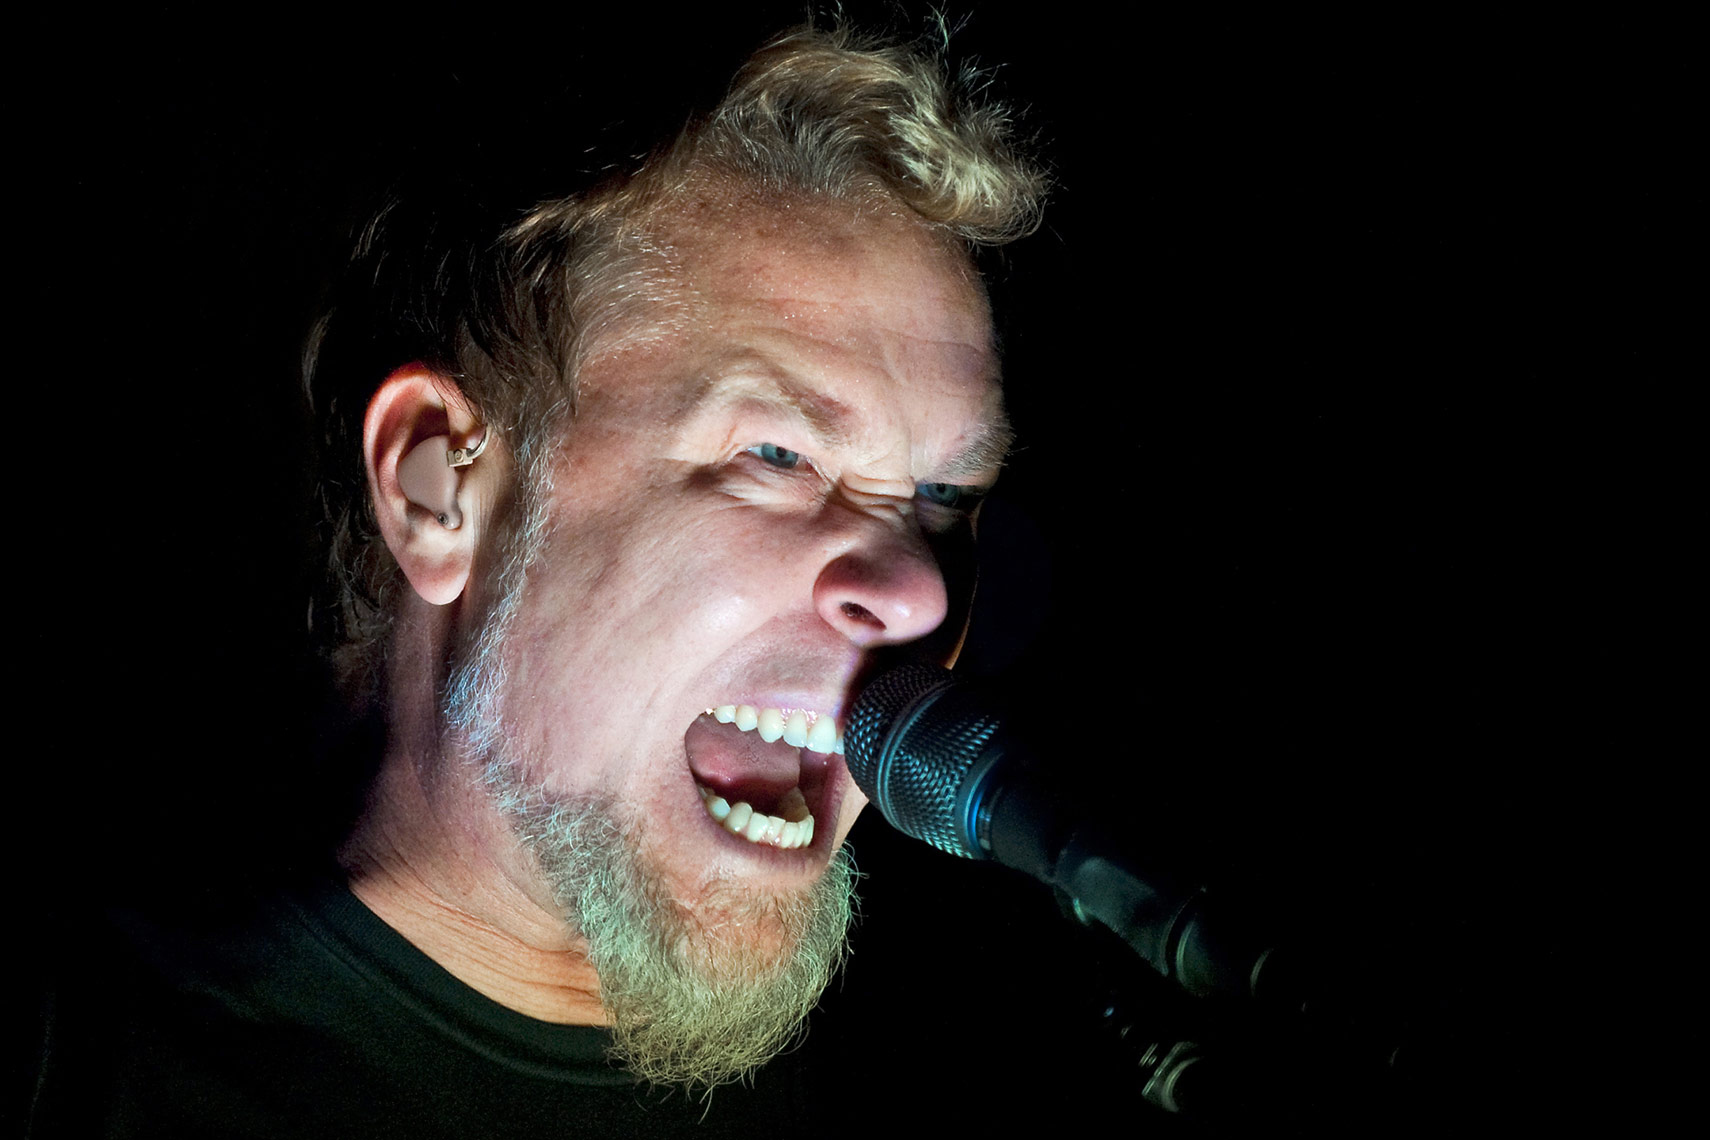 James-Hetfield-Metallica-O2-Arena.jpg